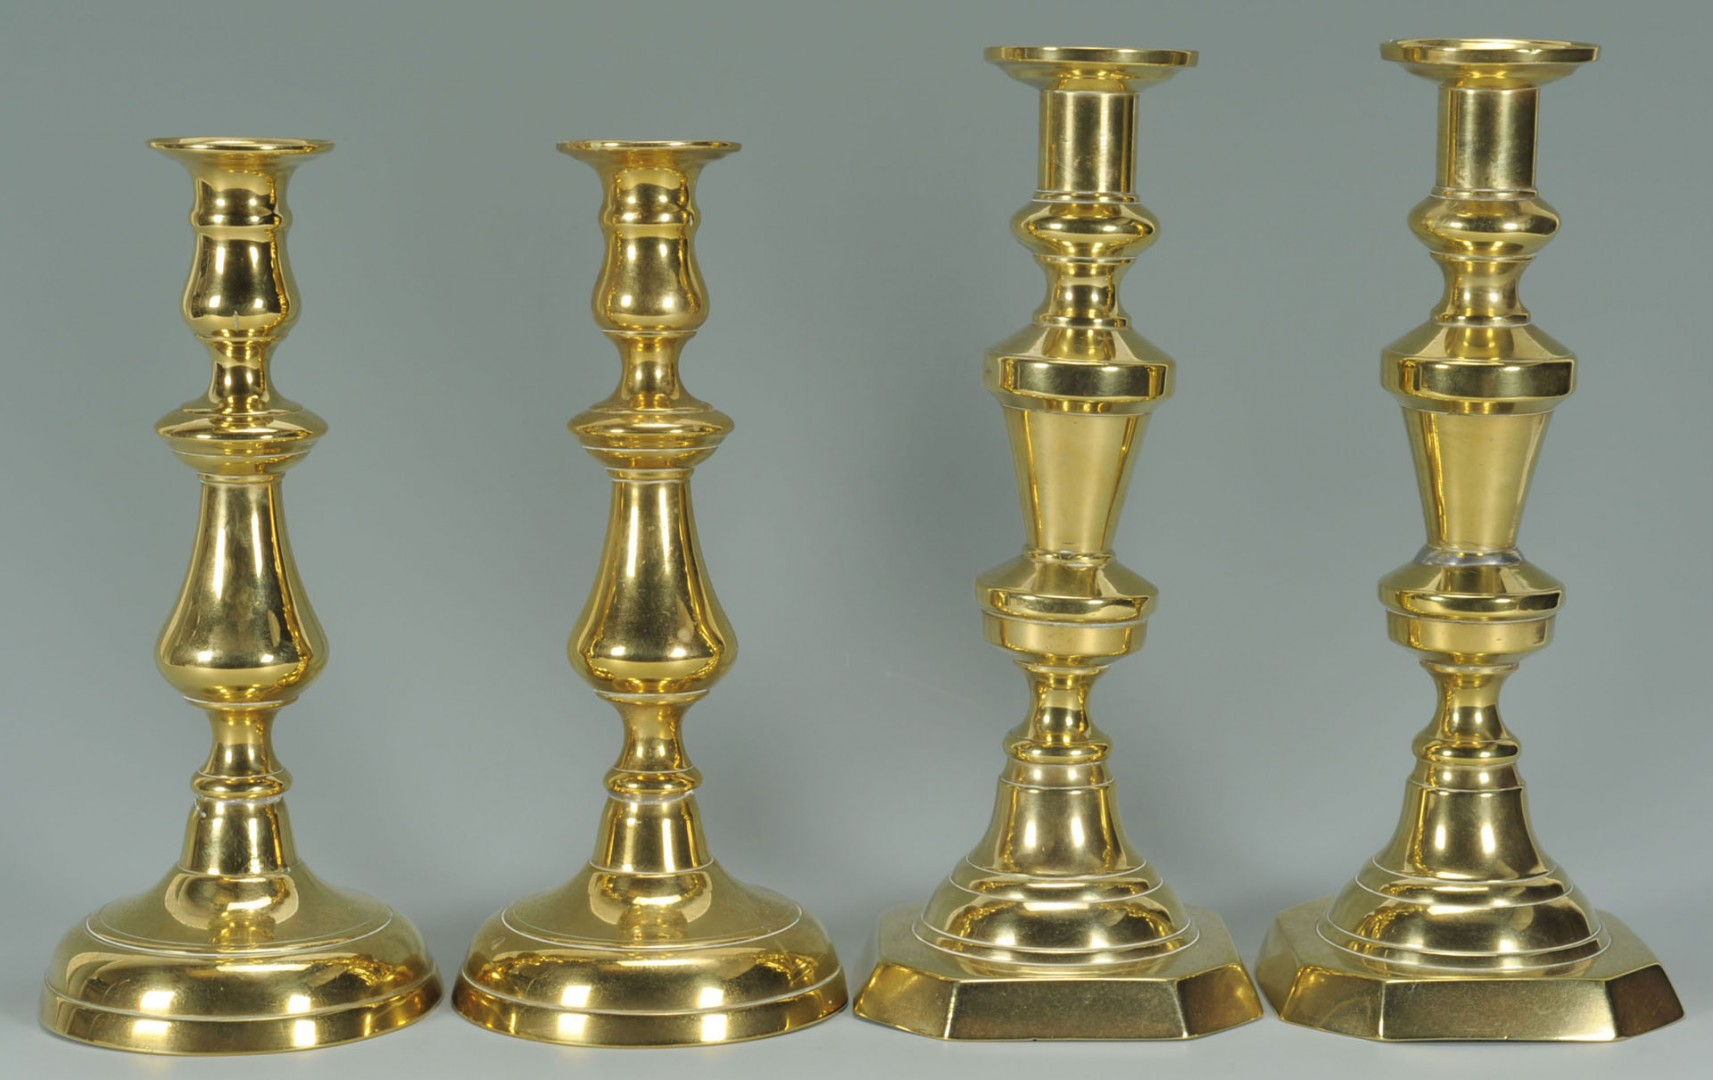 Lot 425: 4 Pairs Brass Candlesticks, 1 with shades, 8 total